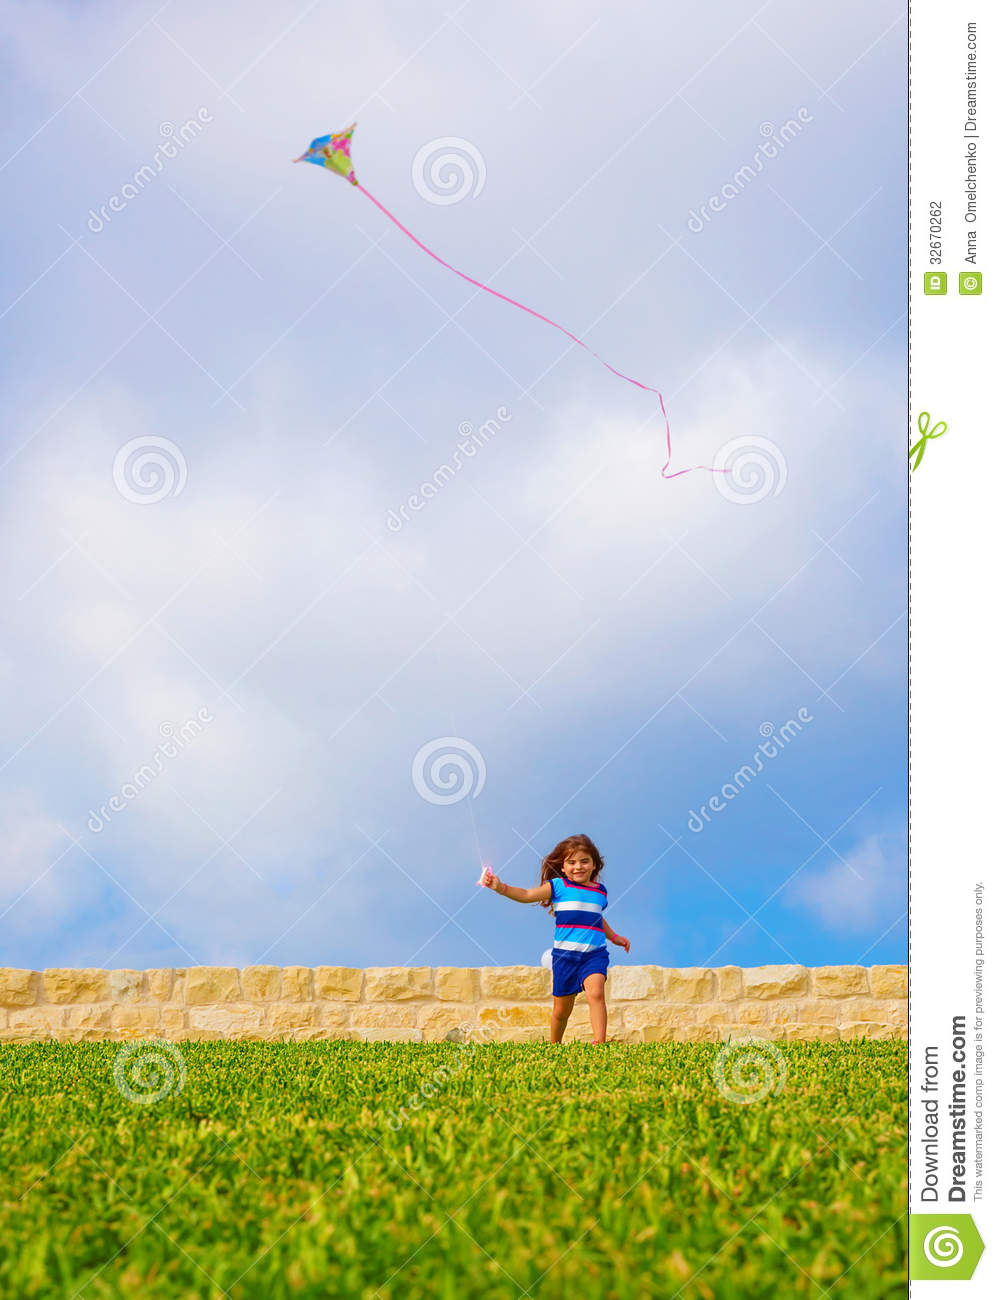 running a kite around the room essay Download children running stock photos affordable and search from millions of royalty free images, photos and vectors.